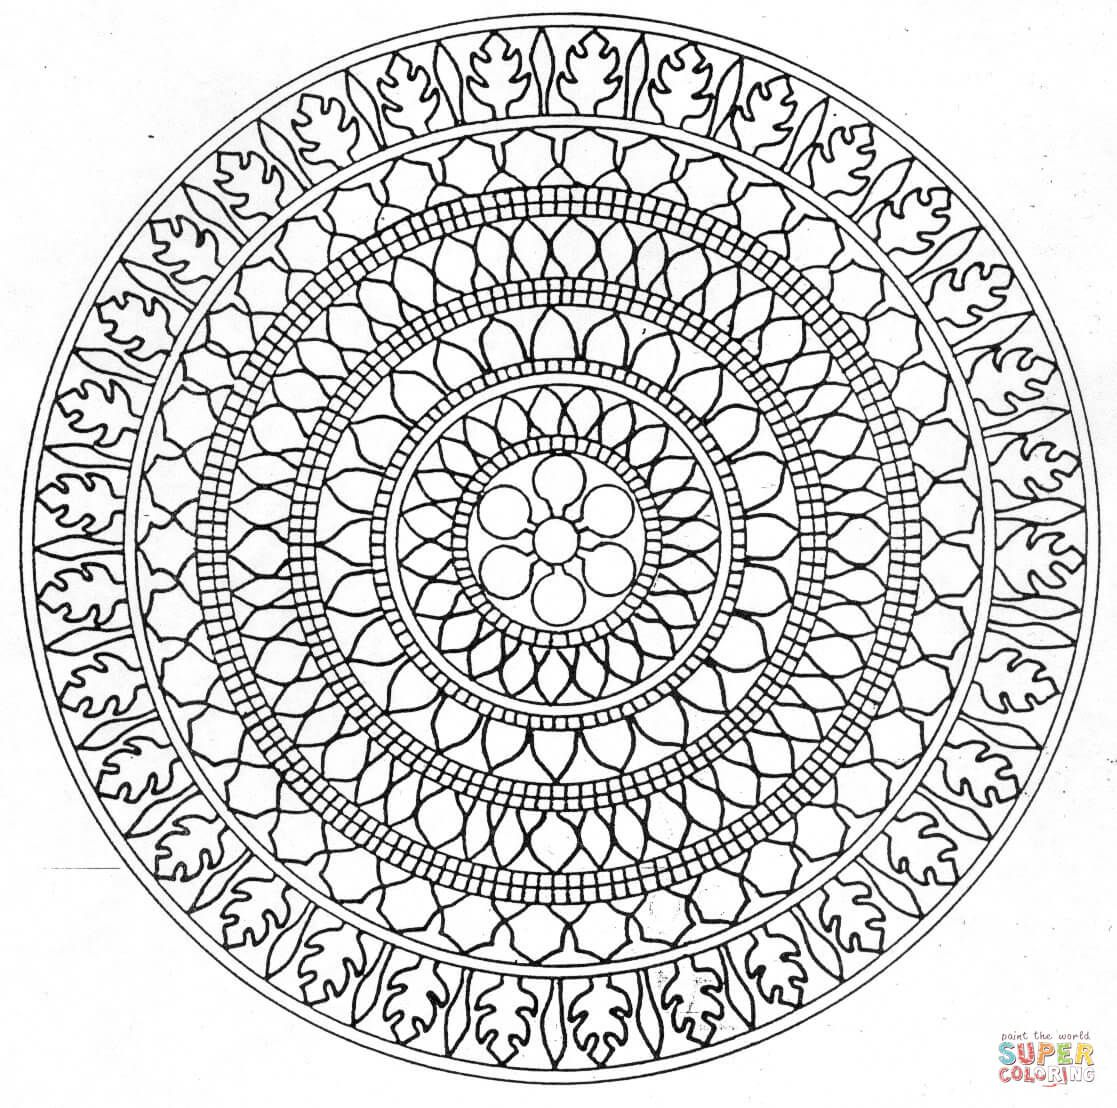 Stress free coloring images - Http Colorings Co Stress Relief Coloring Pages